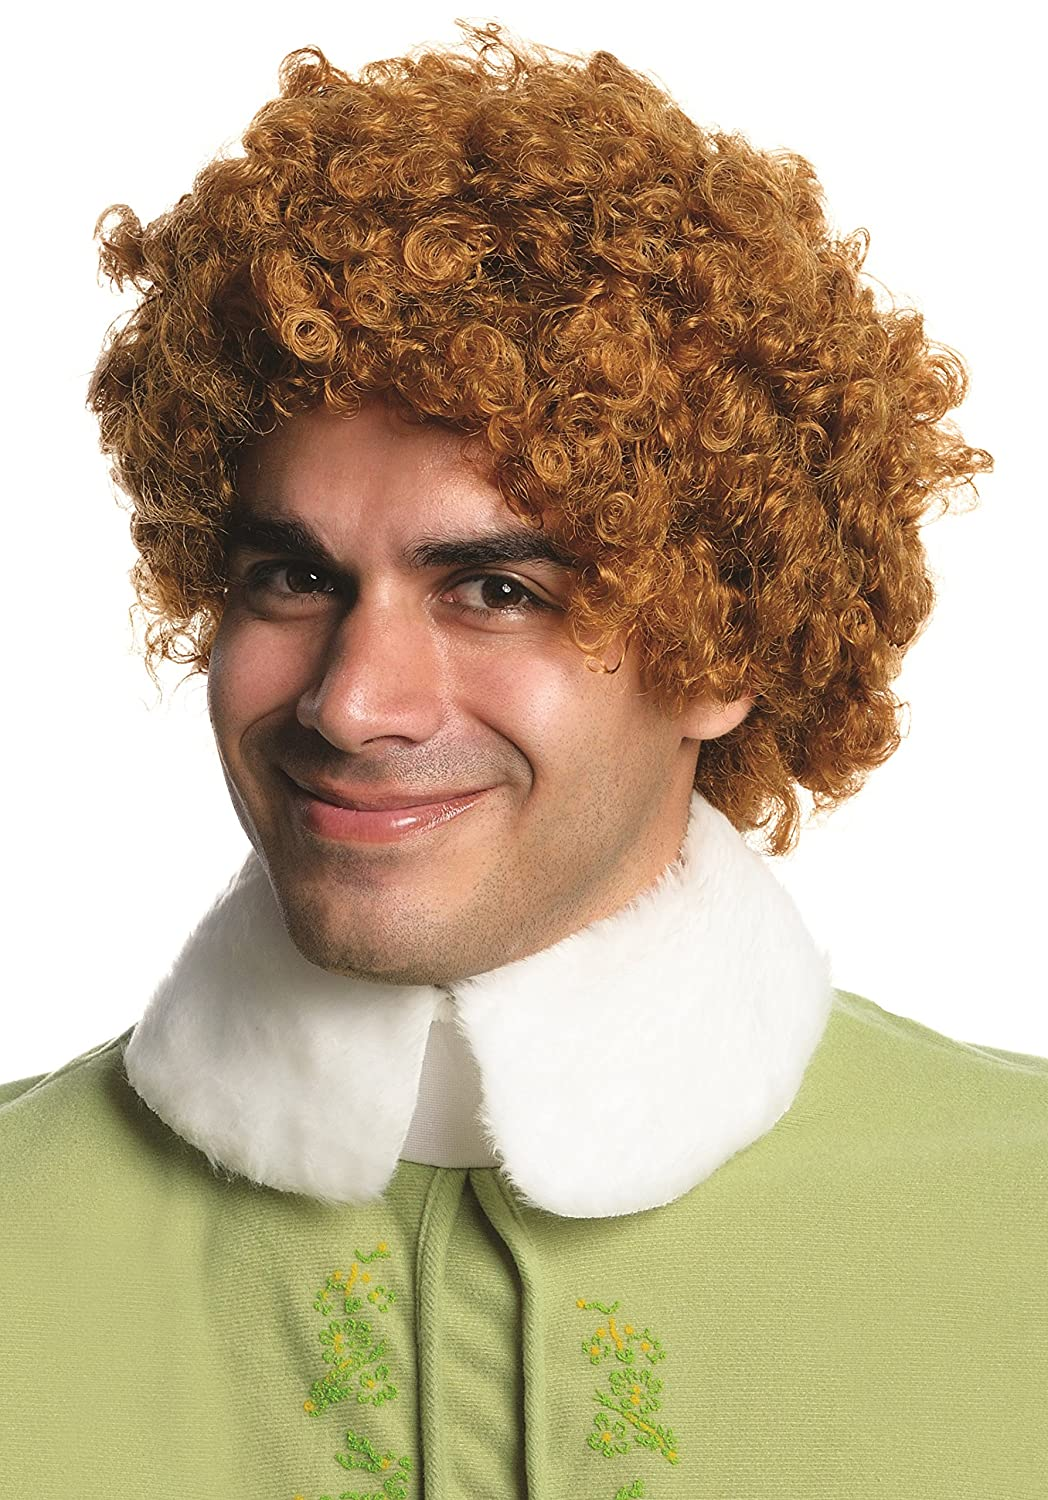 Rubie's Costume Co Elf Buddy The Elf Wig Brown One Size Rubies Costumes - Apparel 51129